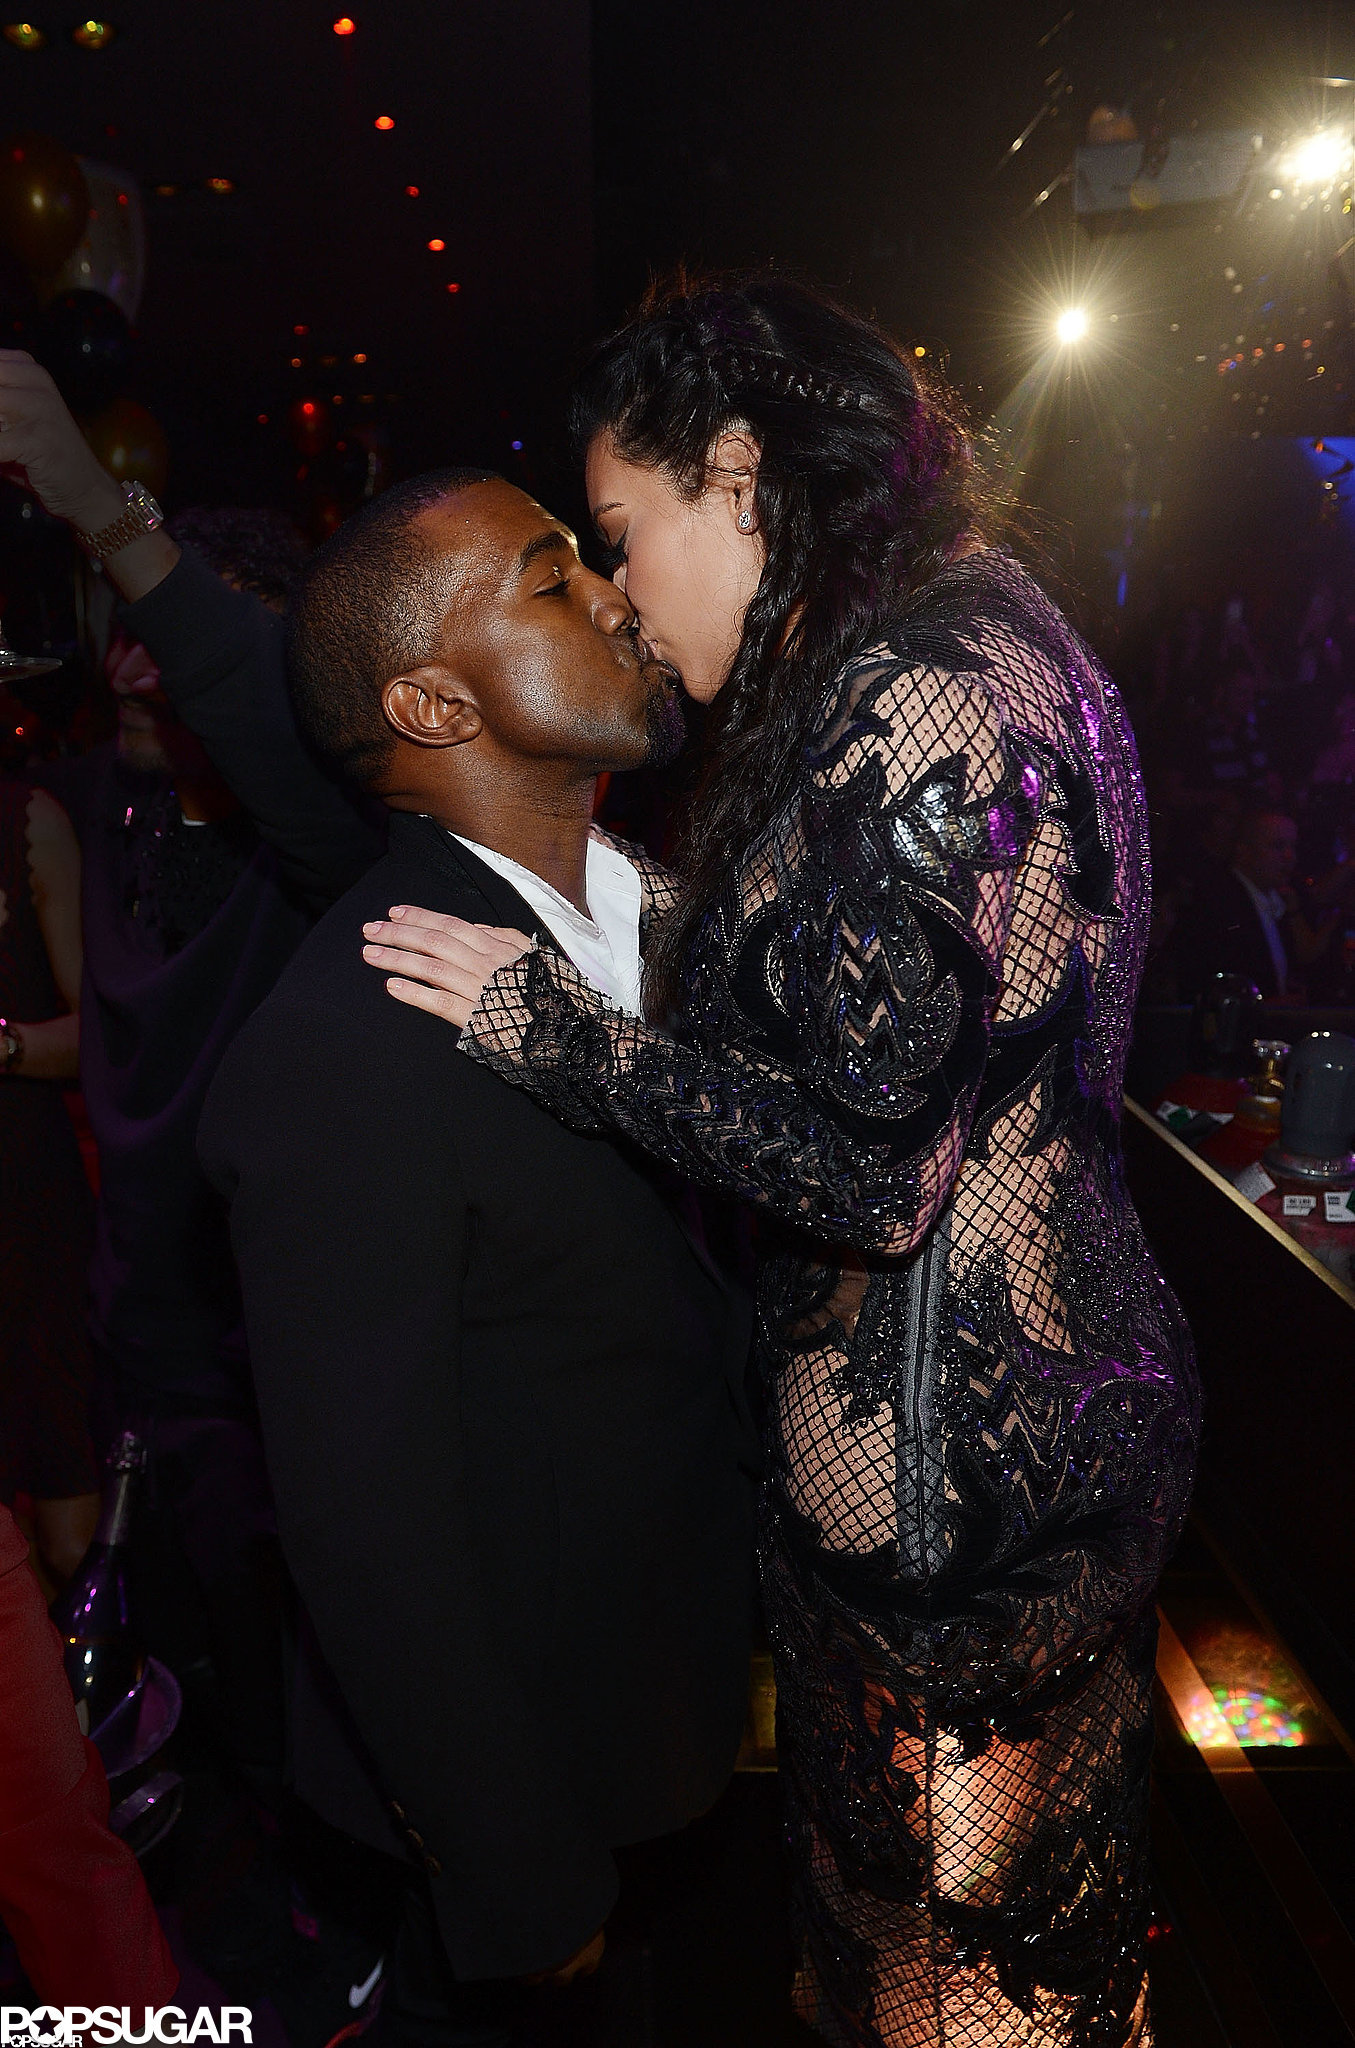 Kanye West and Kim Kardashian had lots to share affection over after announcing their pregnancy news on New Year's Eve 2013 in Las Vegas.